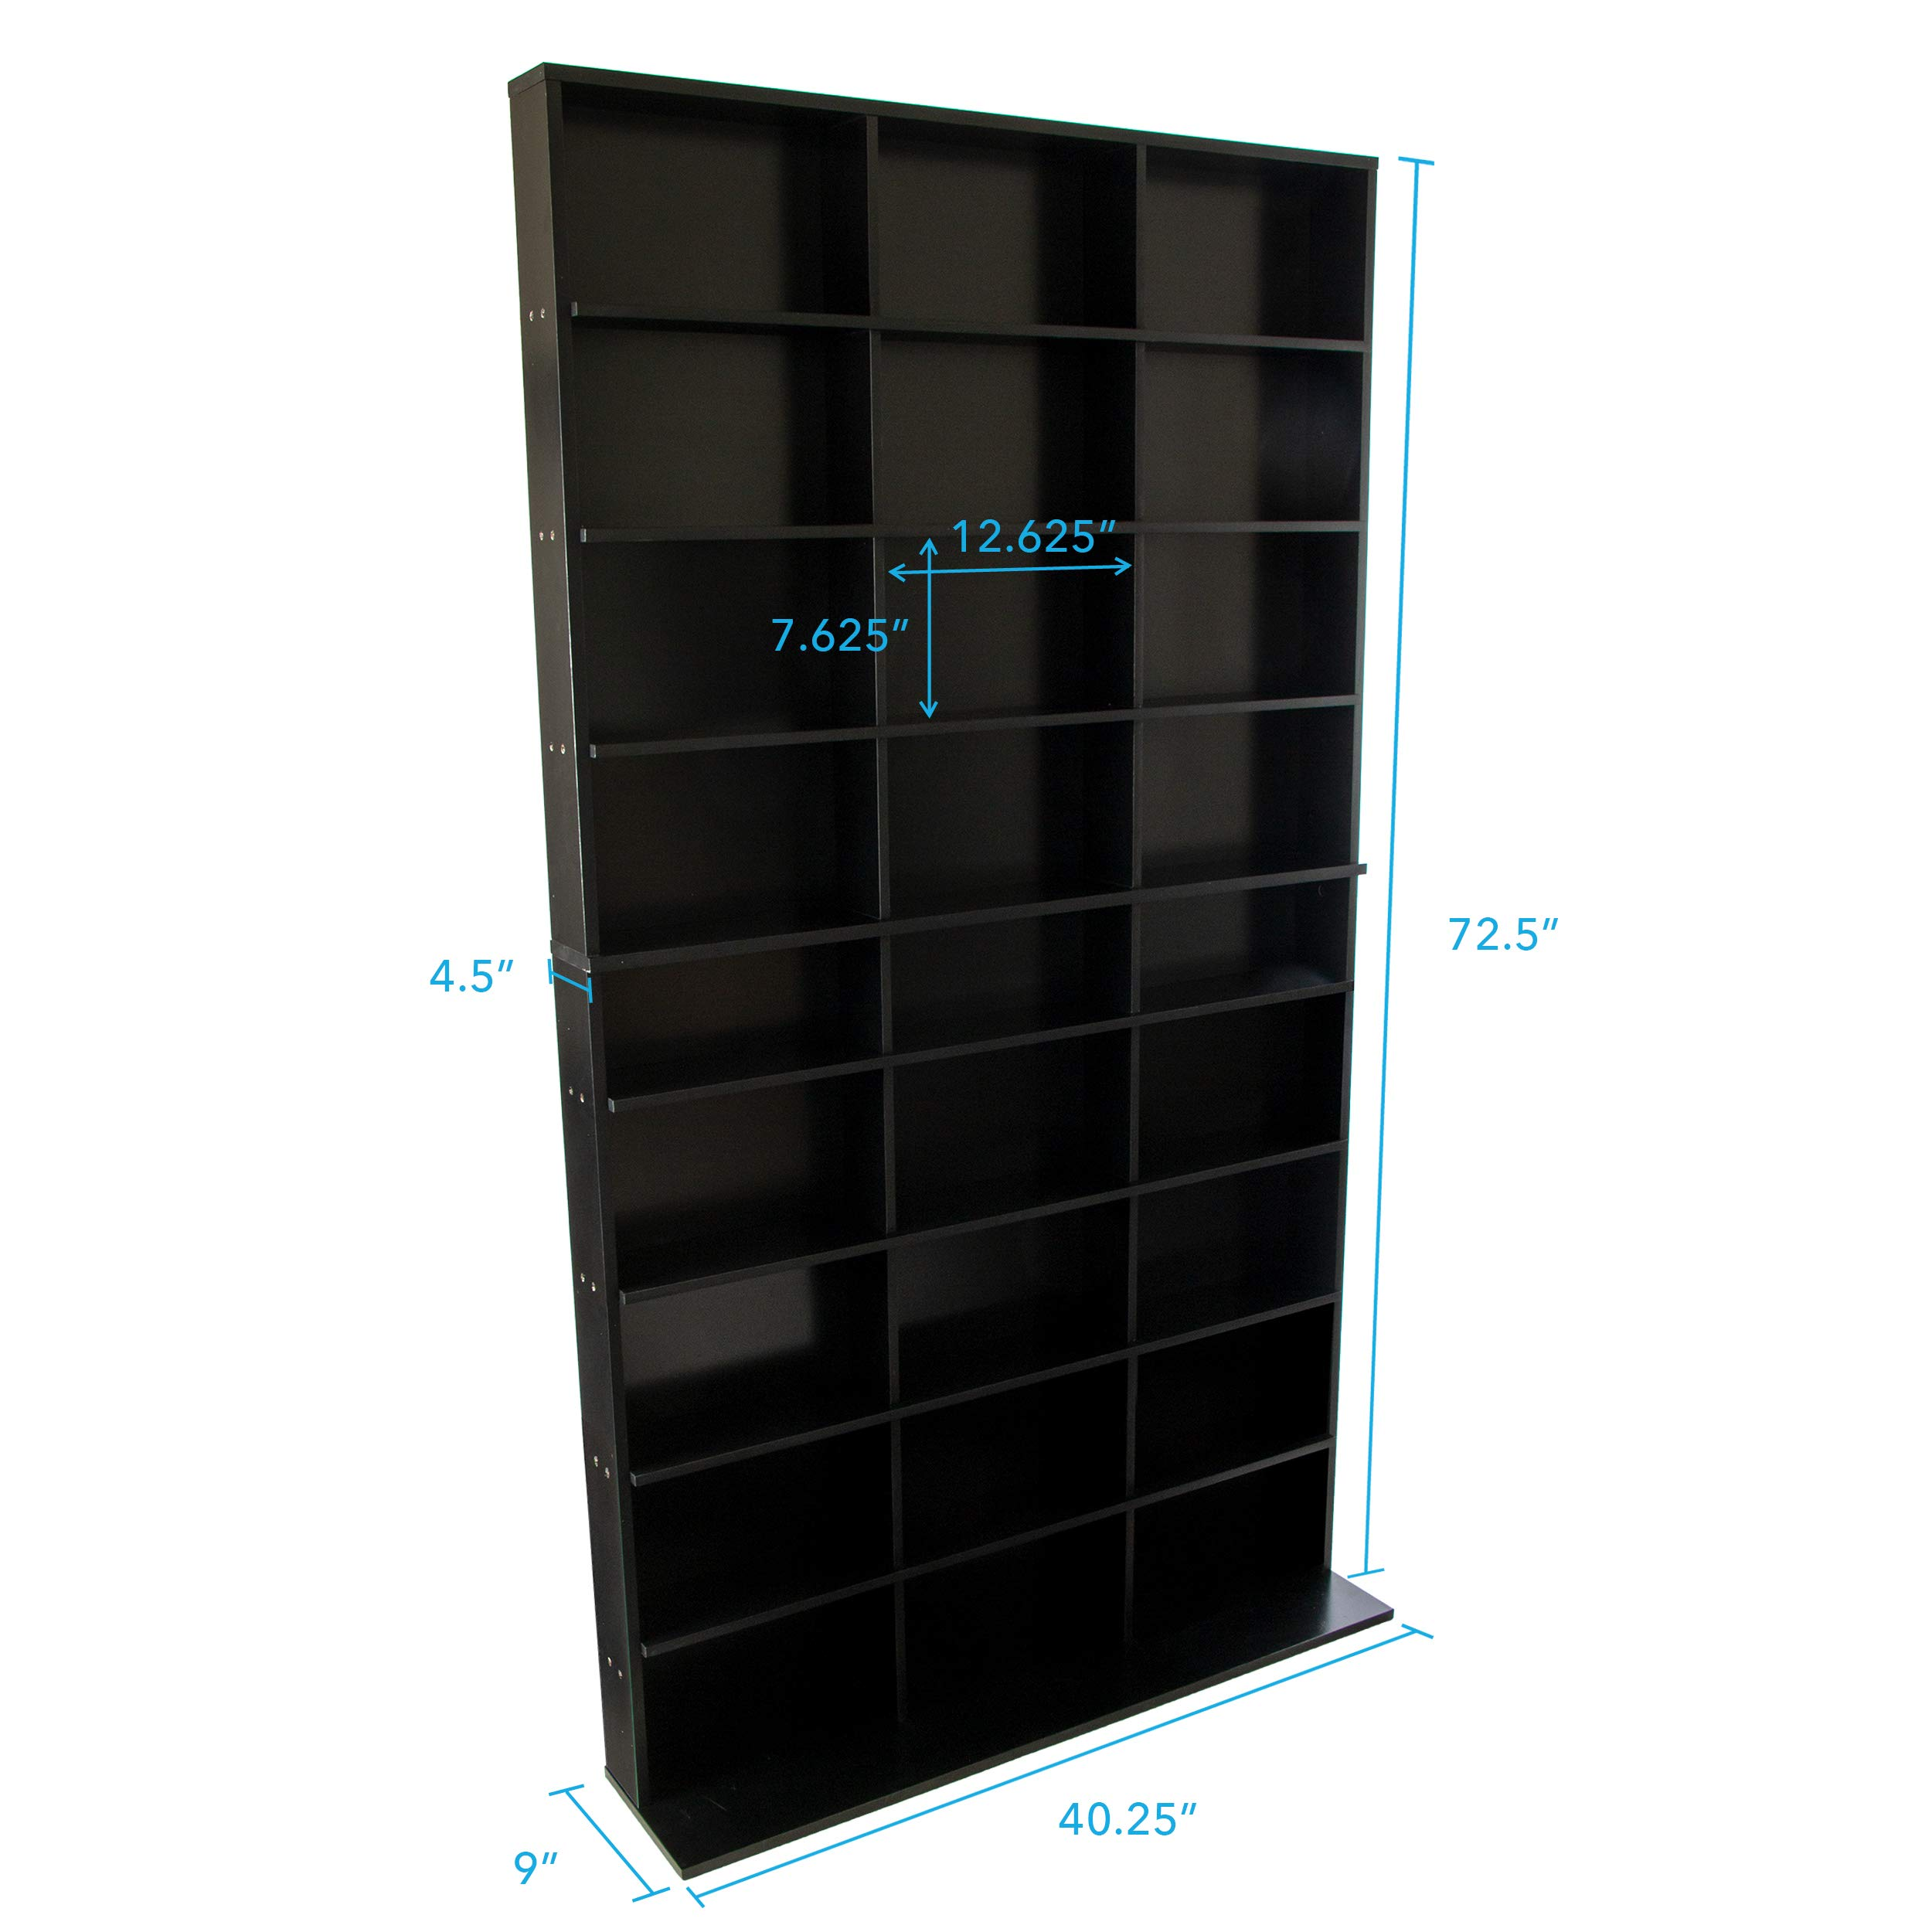 Atlantic Elite Media Storage Cabinet - New/Improved Tower, Stores 837 CDs, 630 Blu-Rays, 531 DVDs, 624 PS3/PS4 Games or 528 wii Games with 9 Fixed Shelves, PN38408117 in Black by Atlantic